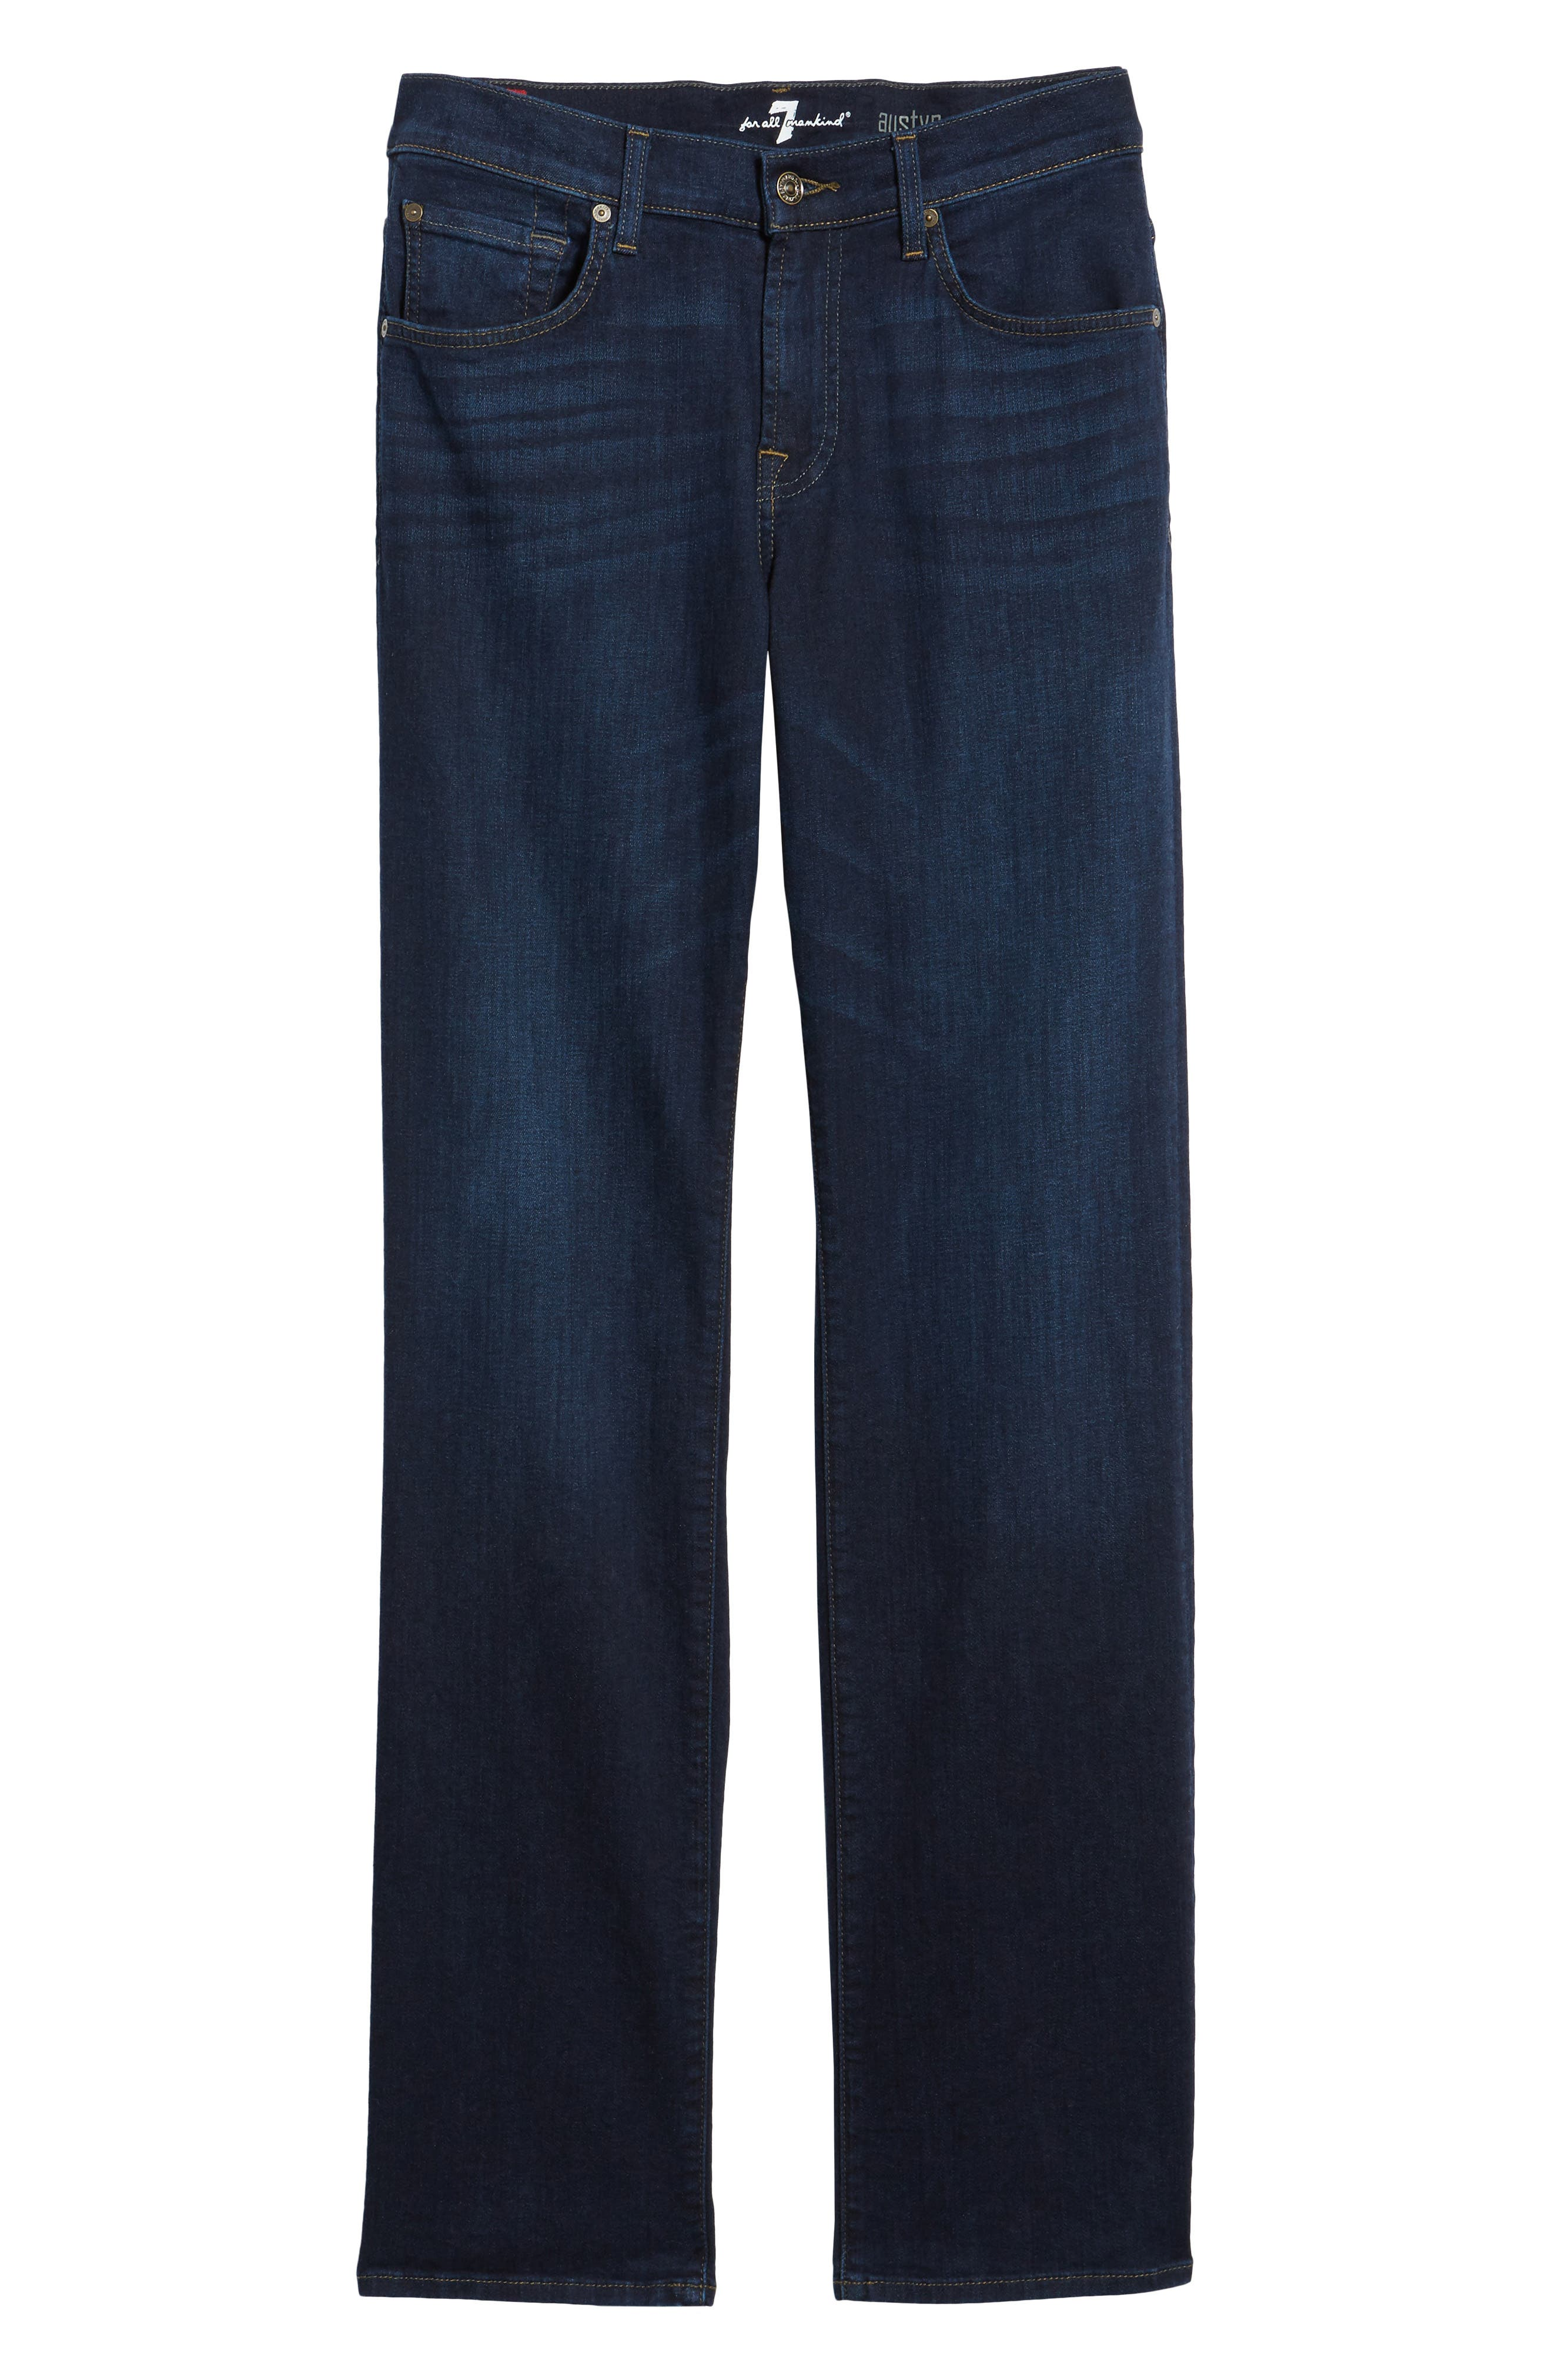 Austyn Relaxed Fit Jeans,                             Alternate thumbnail 6, color,                             401